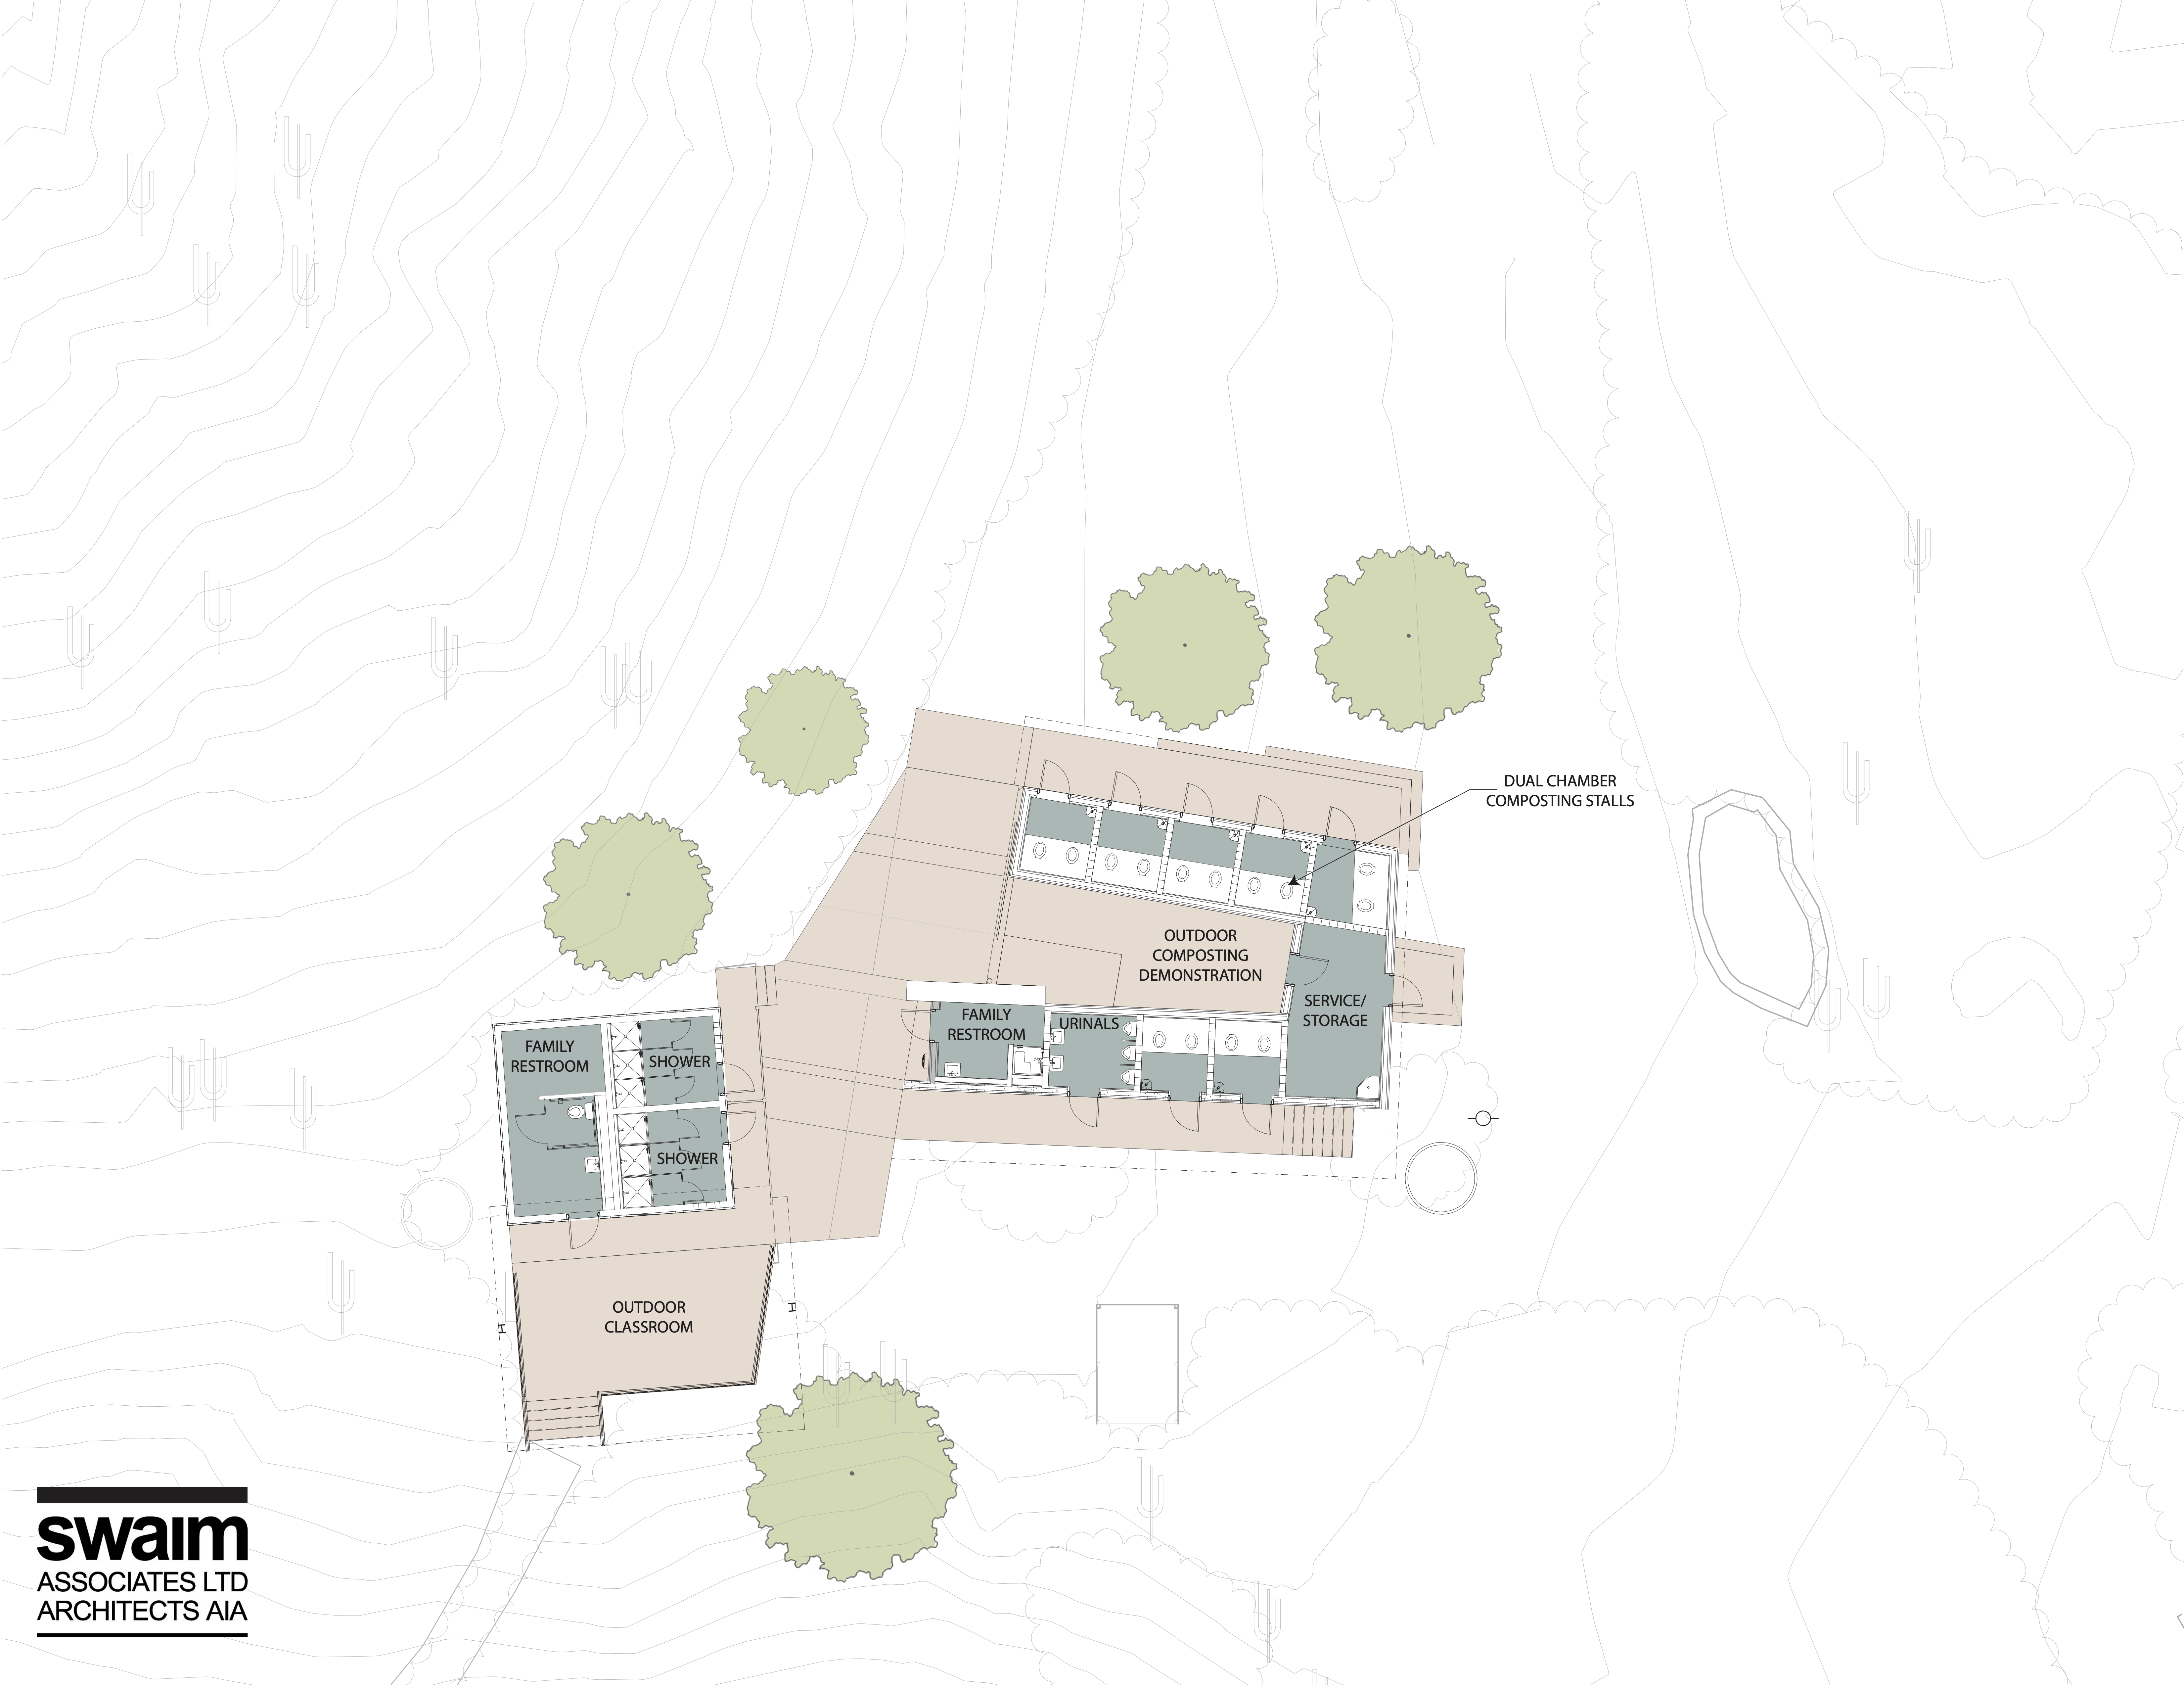 An aerial site plan shows building layout.